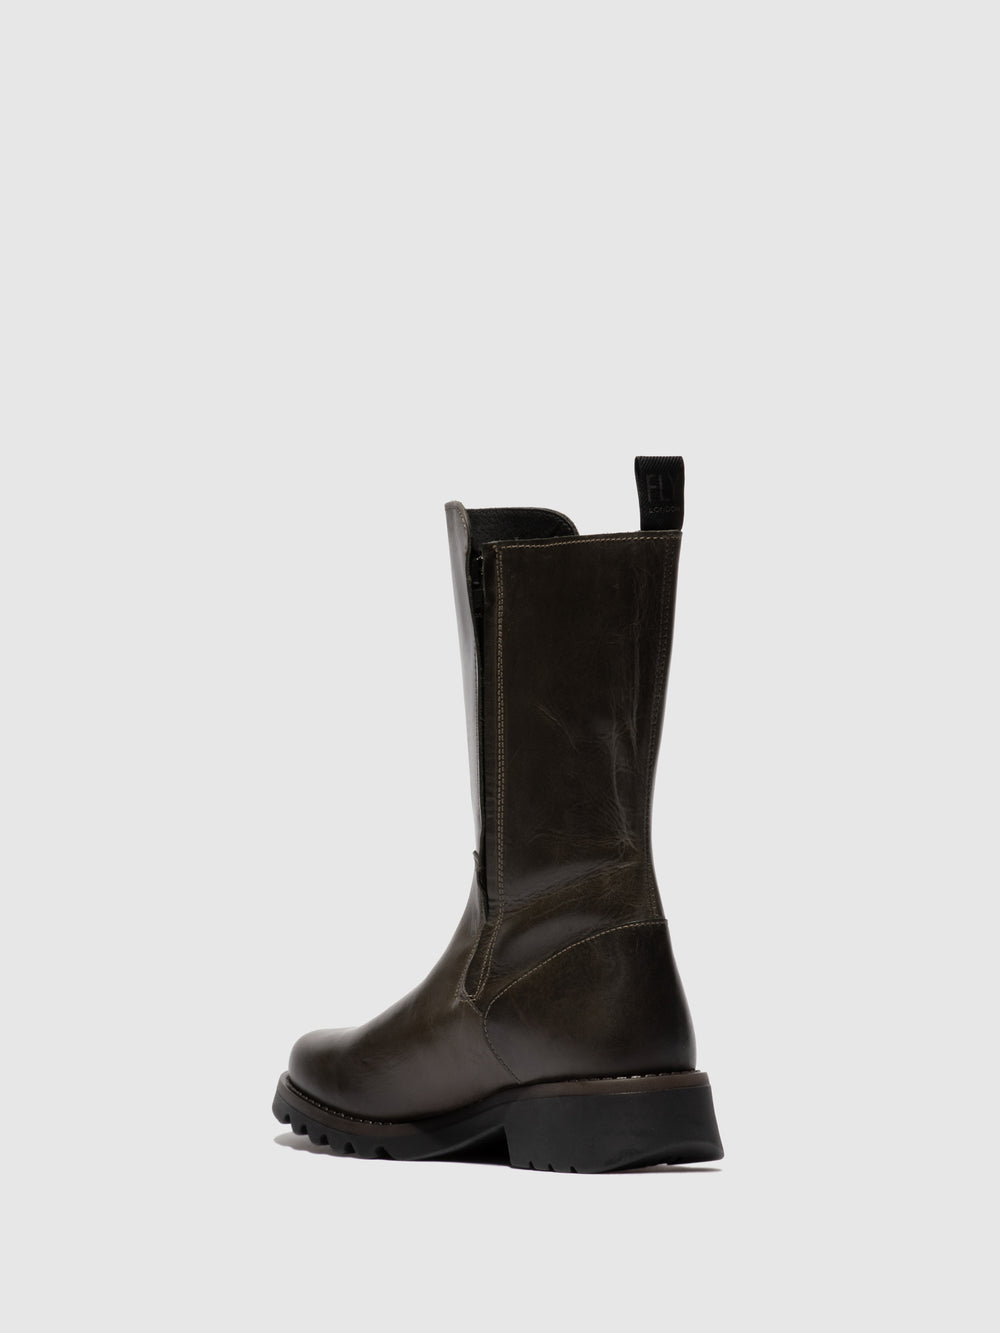 Chelsea Boots RELM641FLY RUG DIESEL